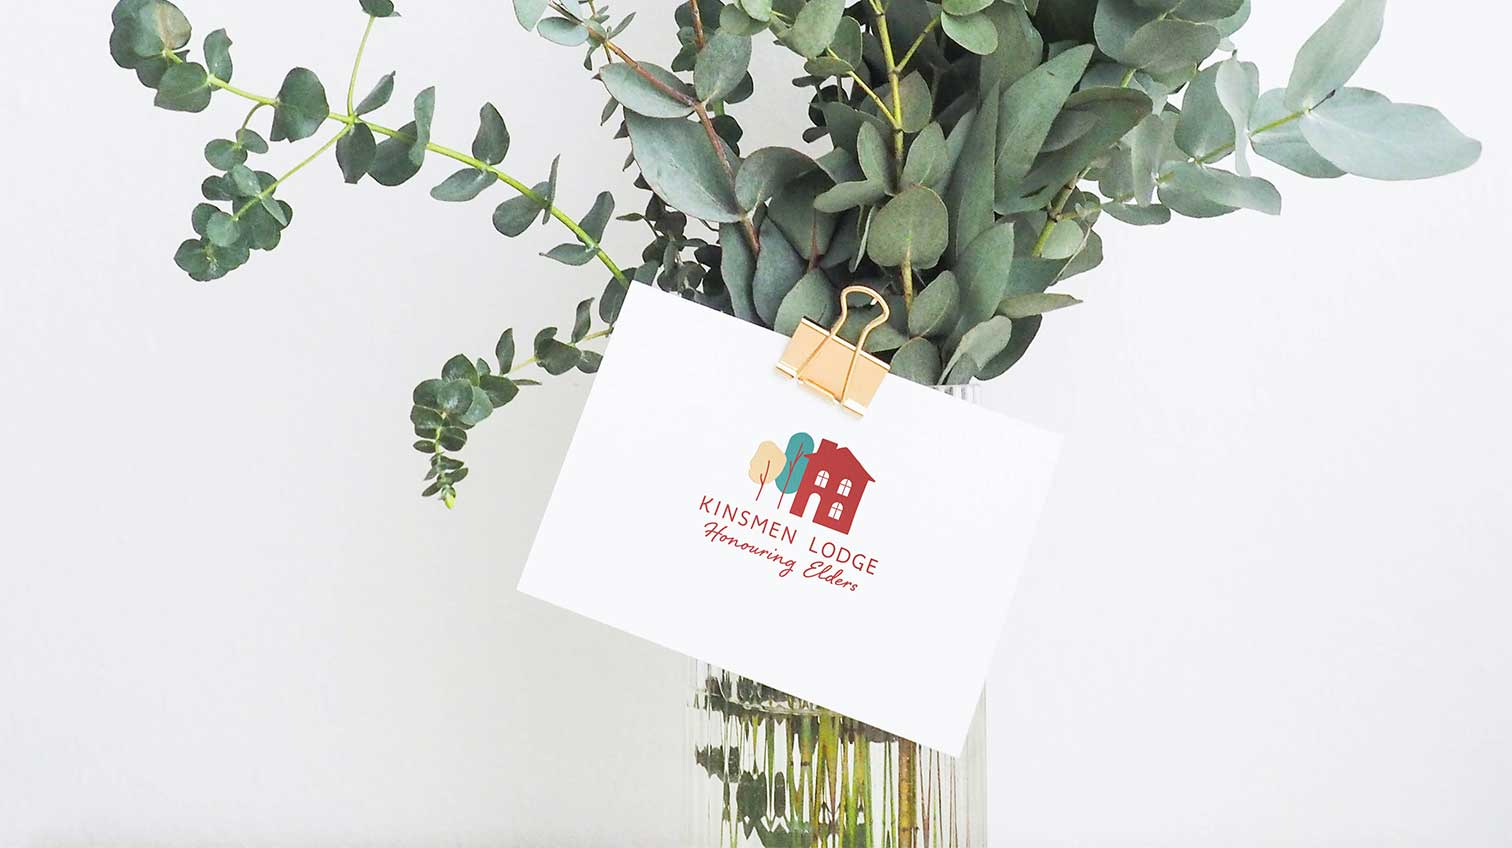 Kinsmen lodge card attached to a vase of plants - White Canvas Design